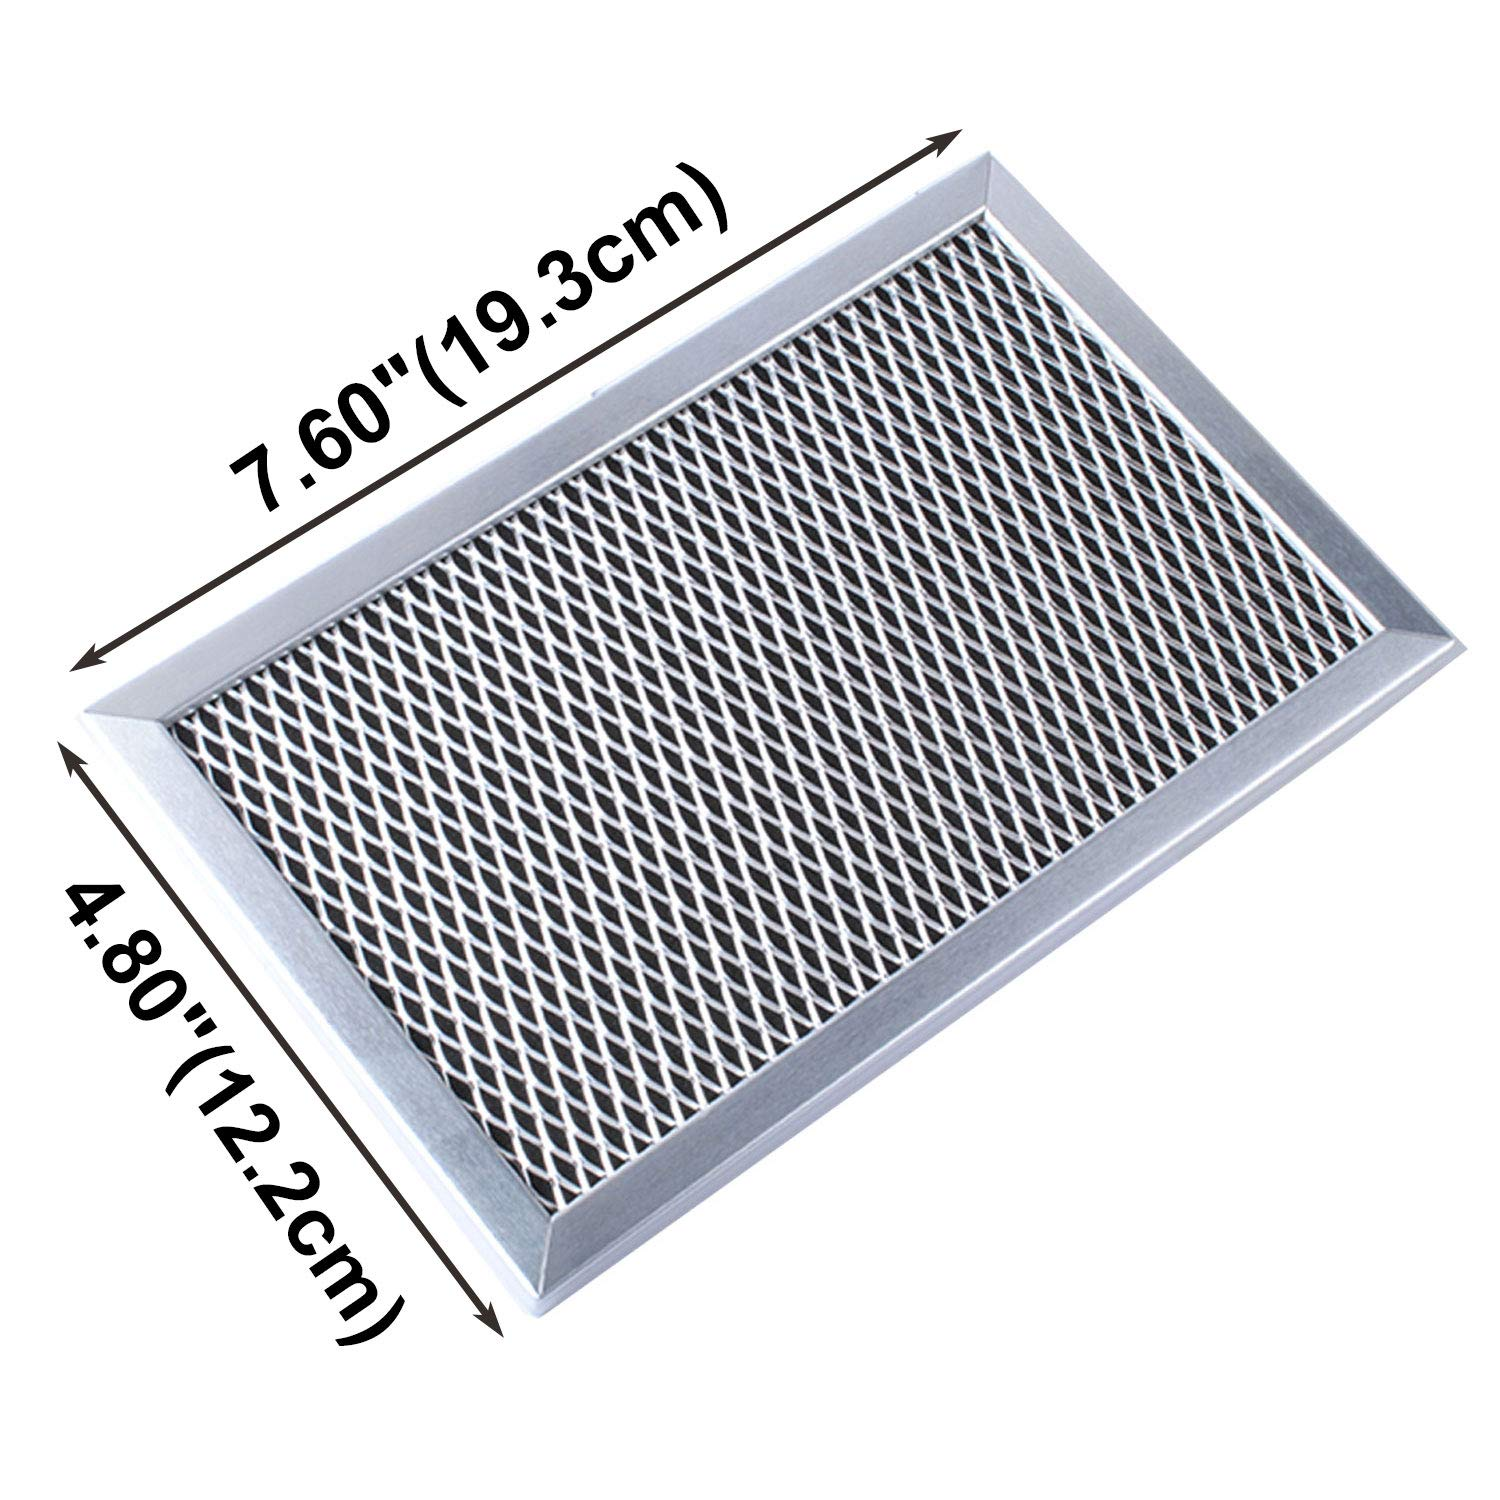 5230W1A011C LG Electronics Microwave Oven Charcoal Carbon Filter Replacements